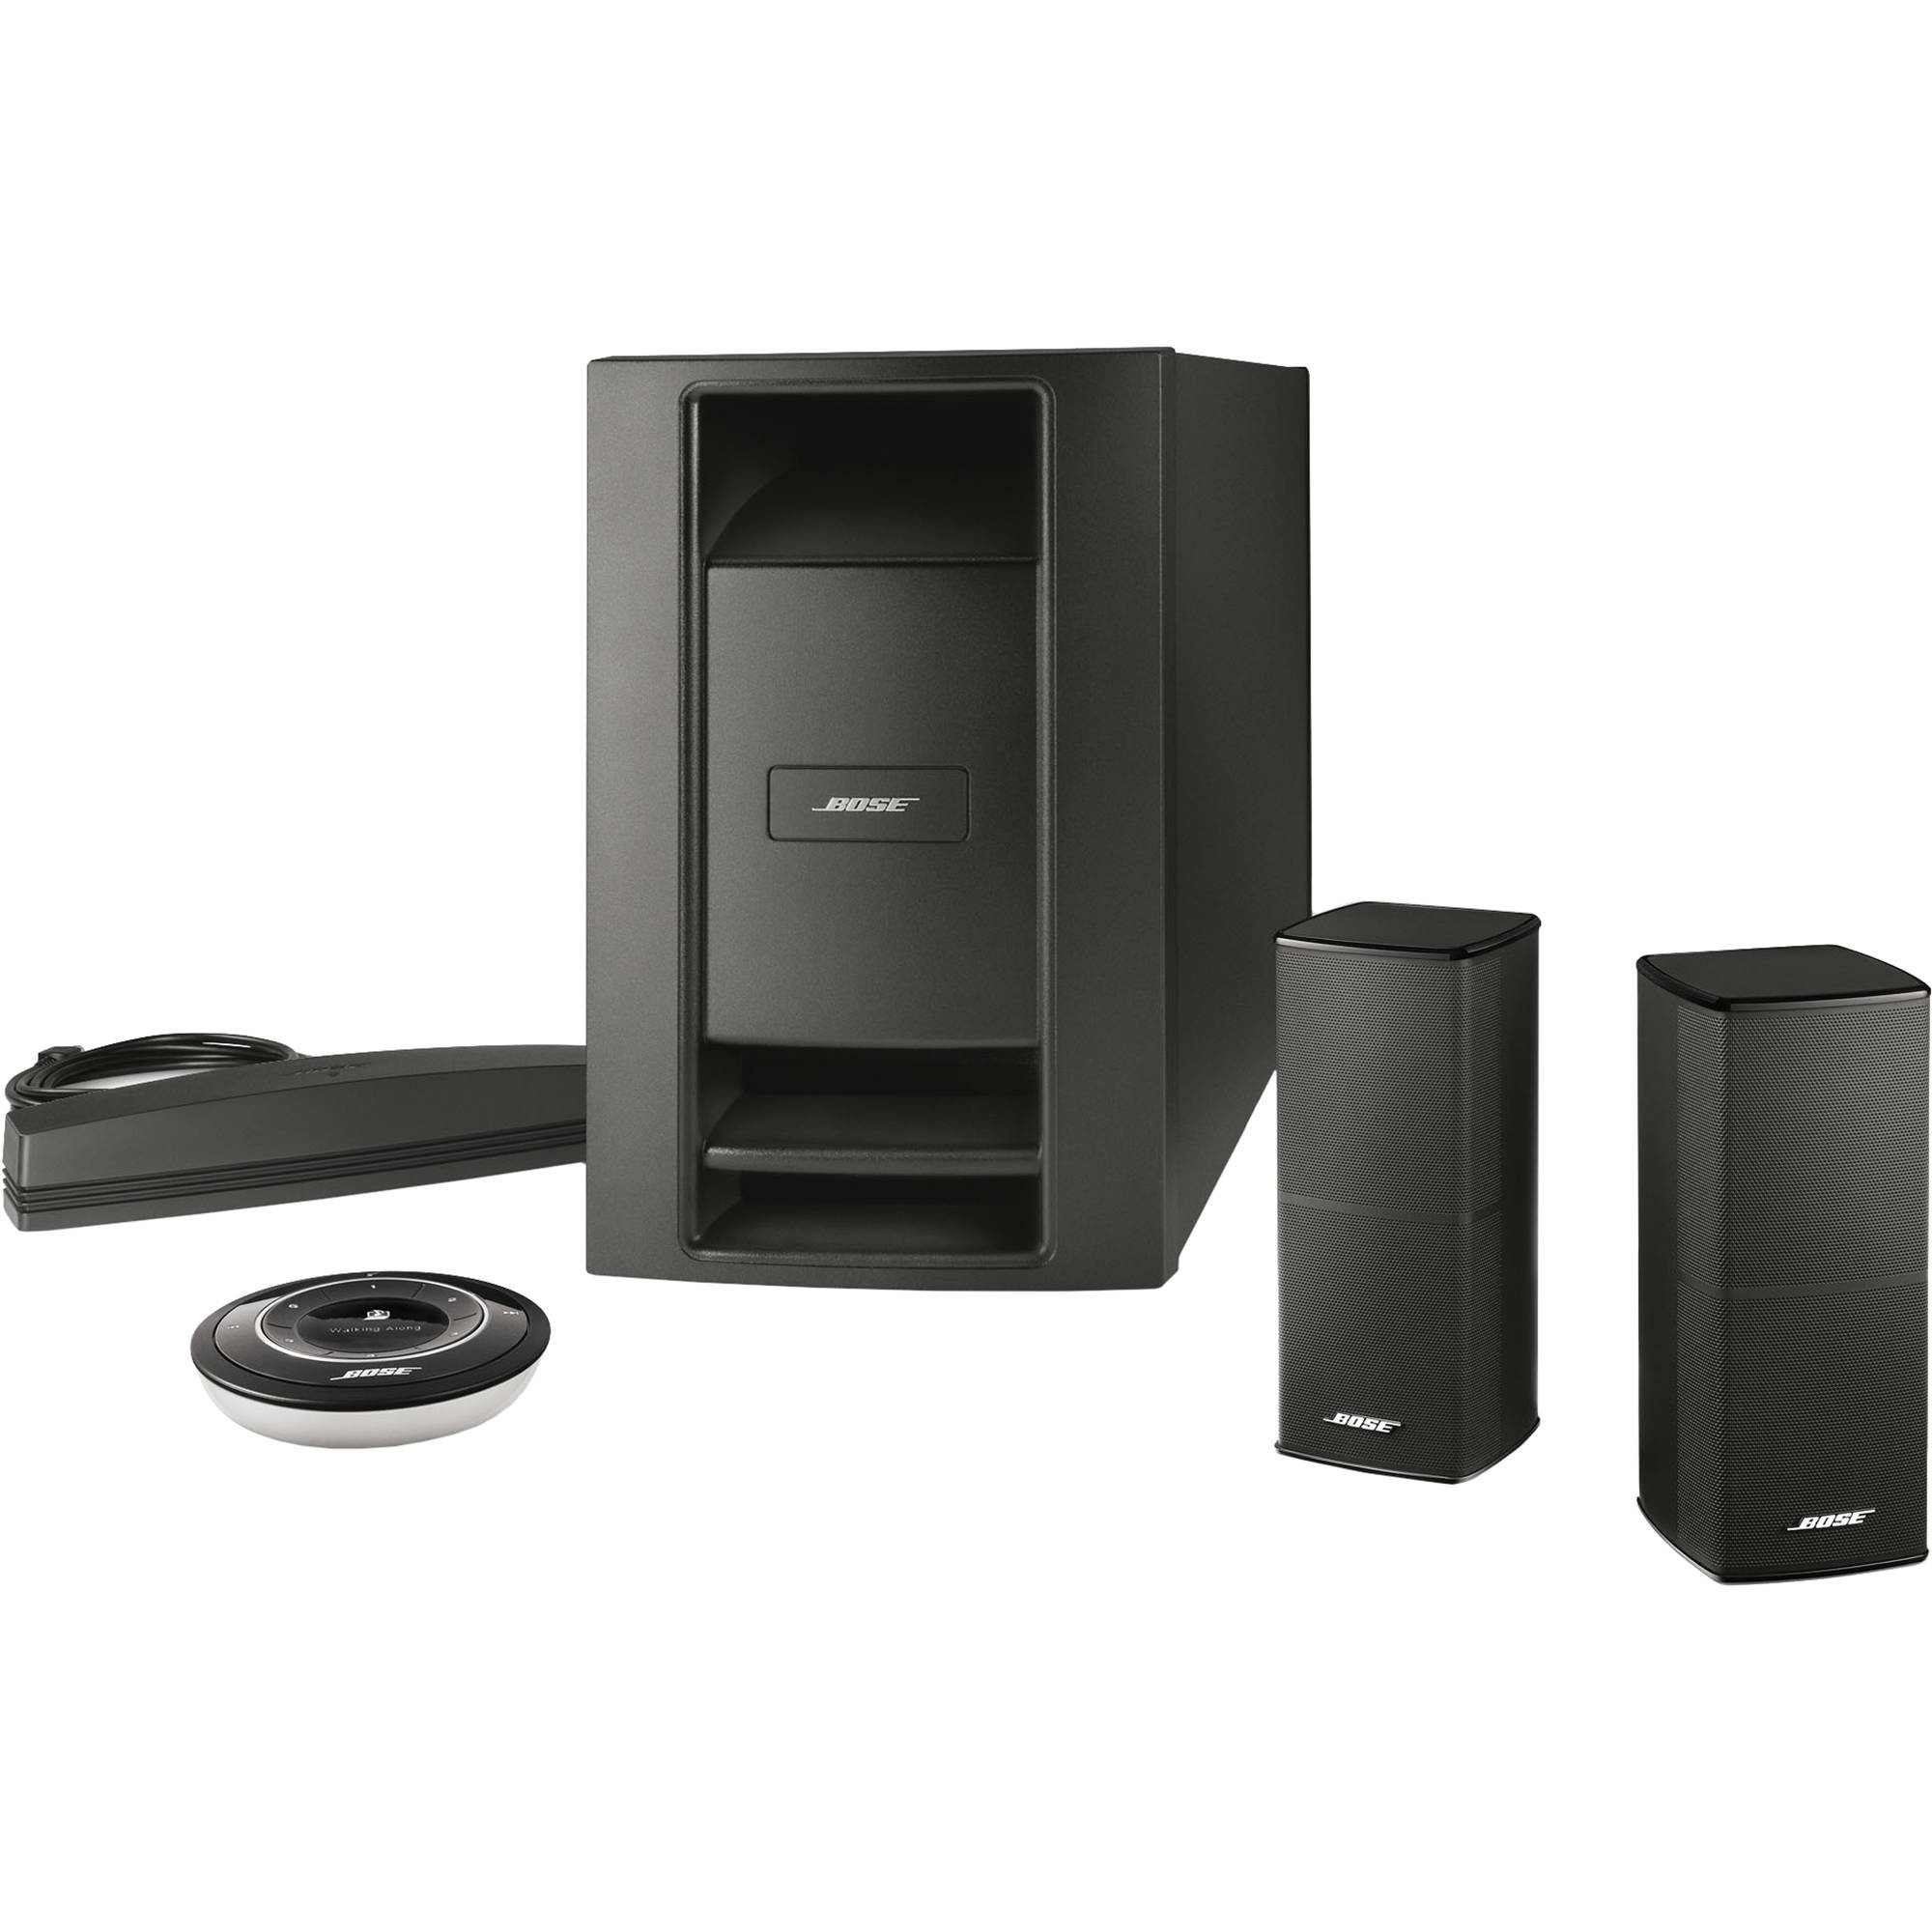 bose jewel cube speakers for sale. bose soundtouch stereo jc series ii wi-fi music system jewel cube speakers for sale